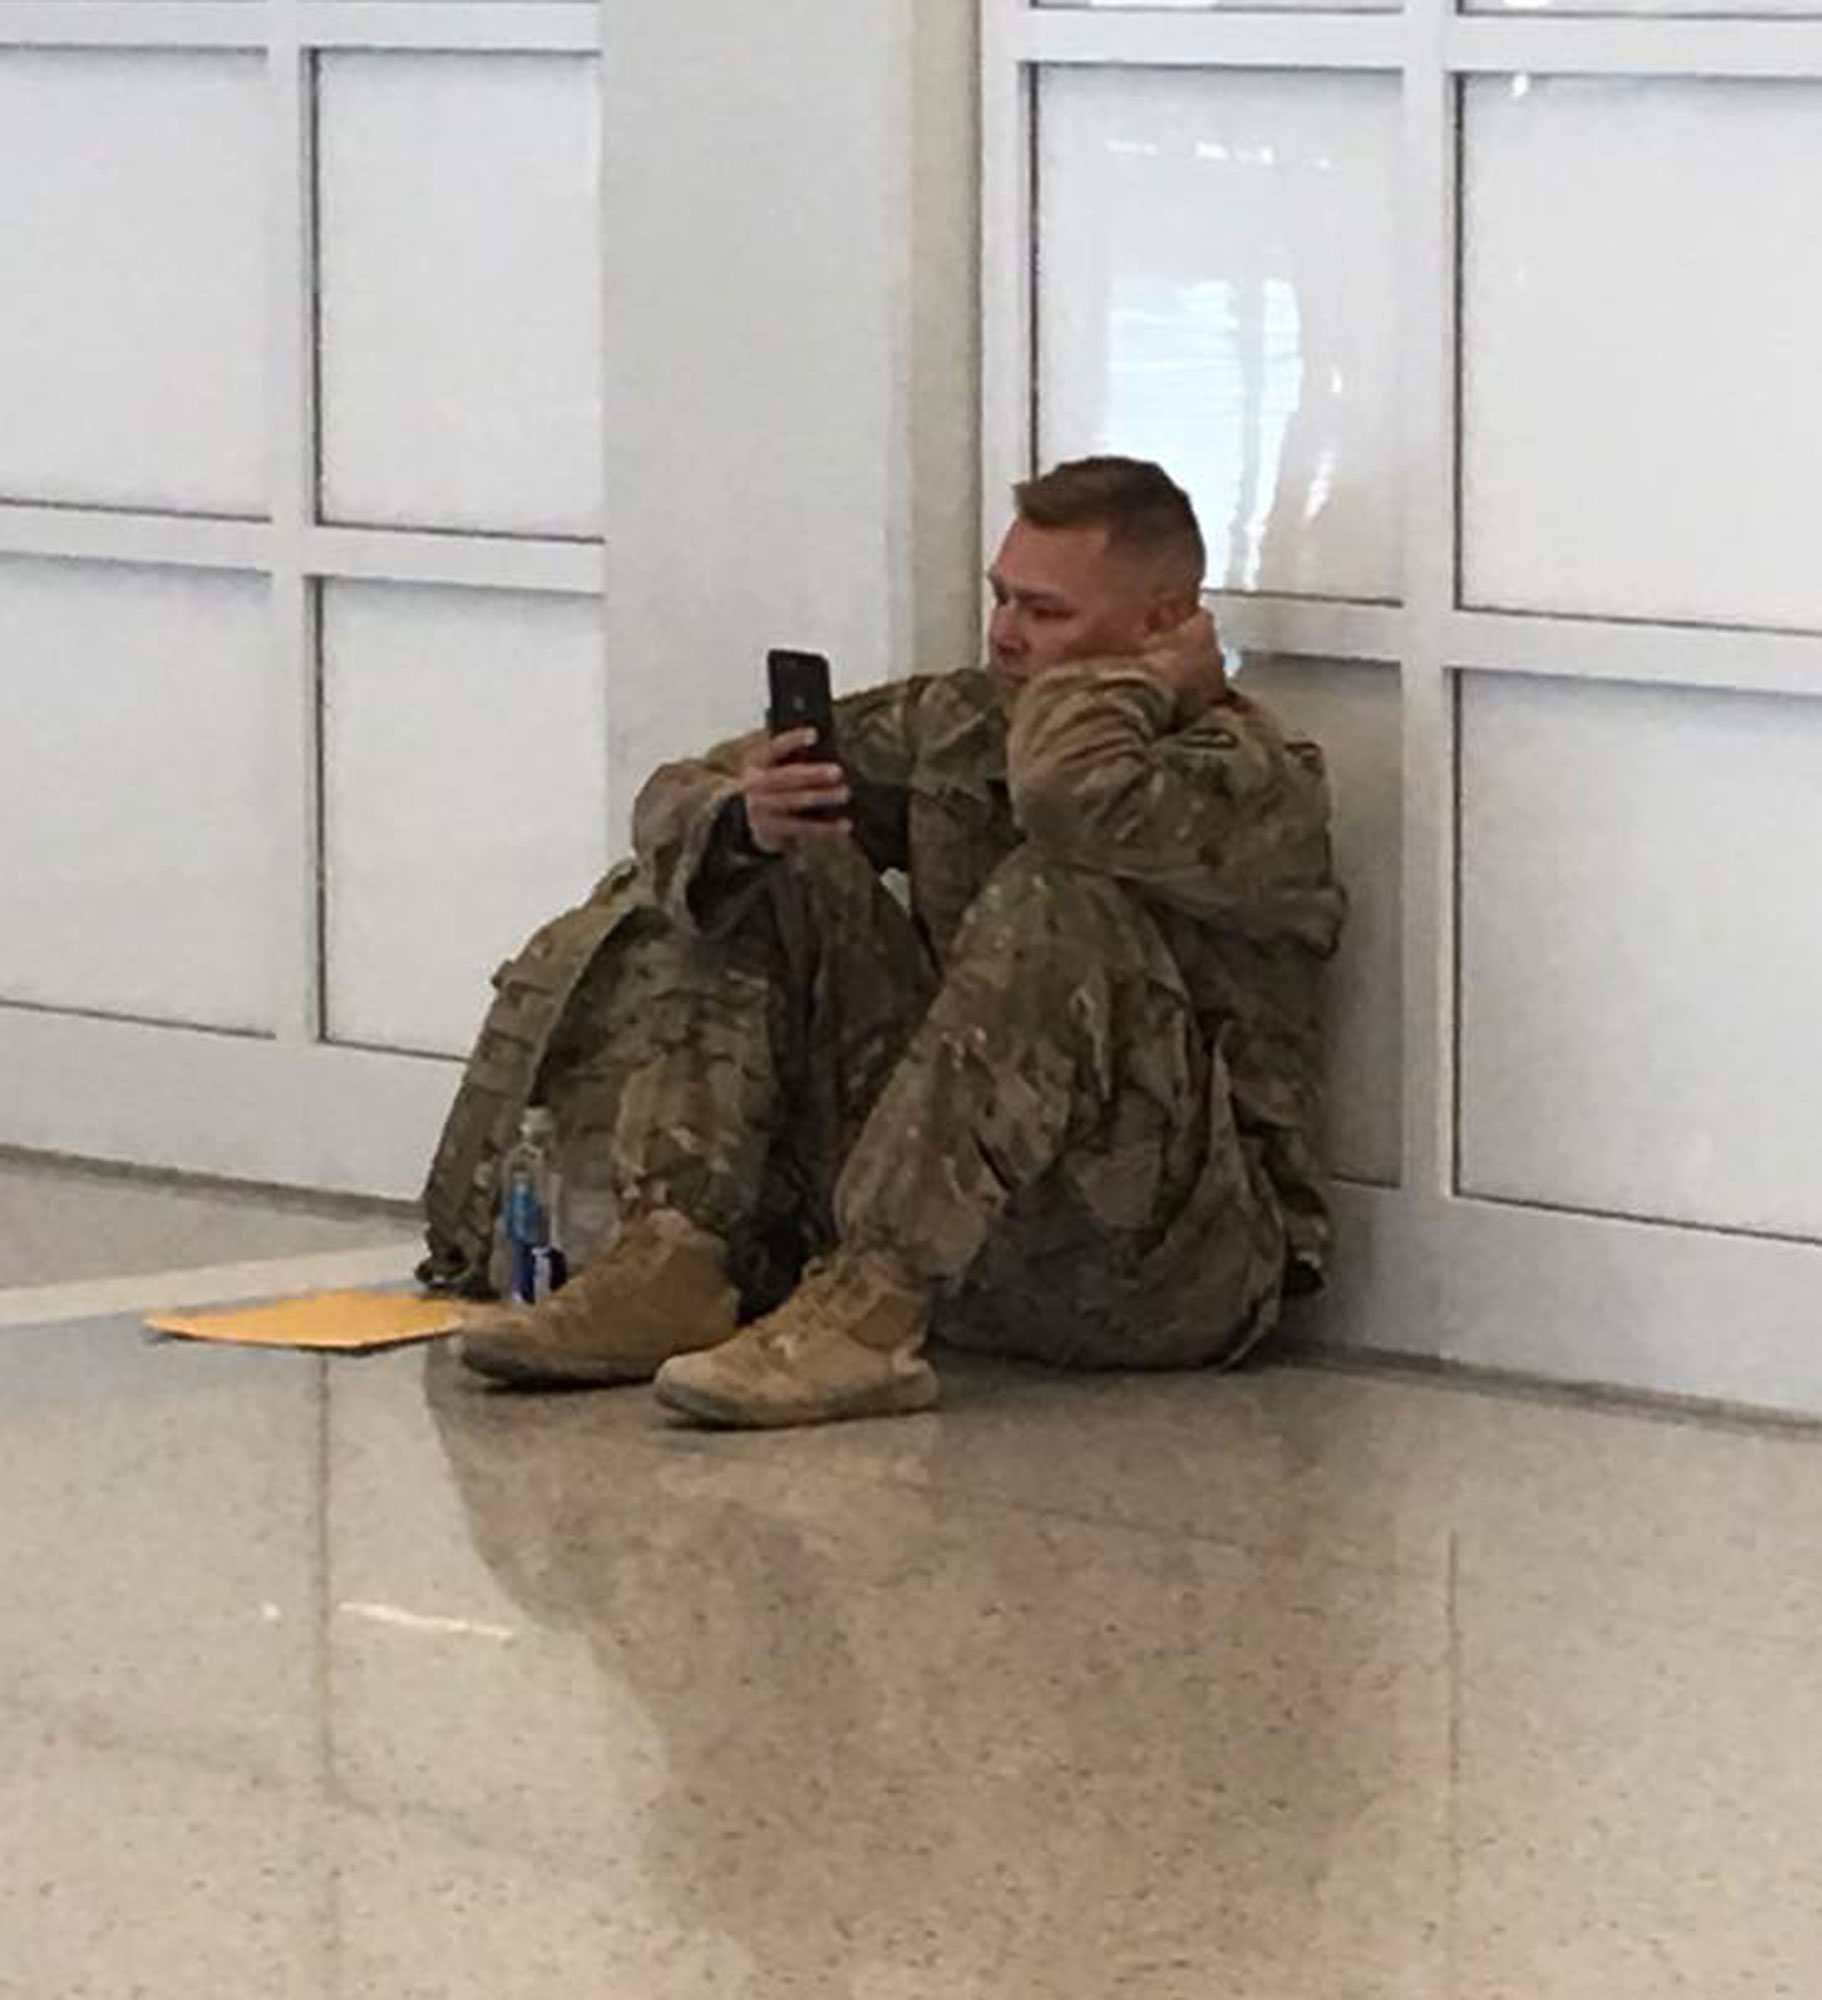 Soldier Stuck in Airport Watches Wife Give Birth to Daughter Over FaceTime: 'We Were All Cheering' soldier-facetime